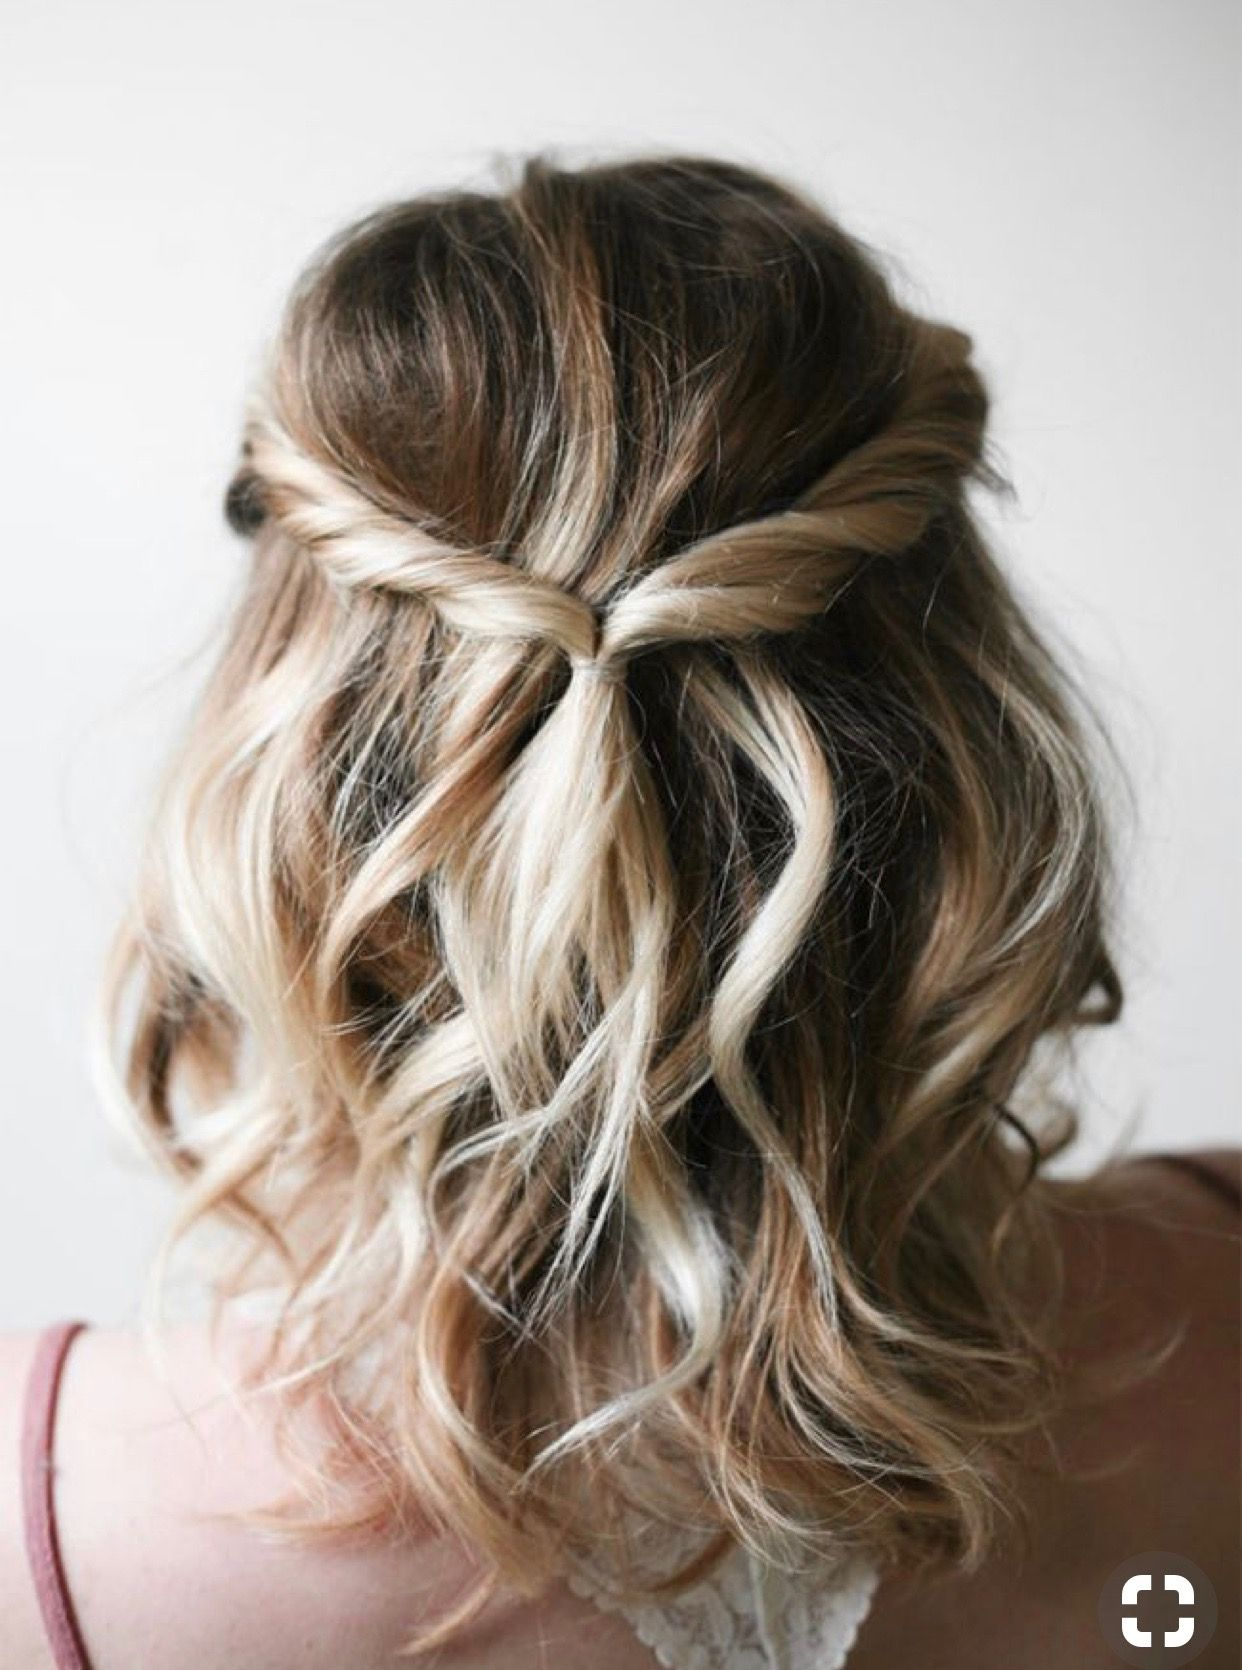 Hairstyles For Medium Length Hair Women S Hair Easy Hairstyles Hair Half Wedding Hairstyles For Medium Hair Simple Prom Hair Cute Hairstyles For Medium Hair